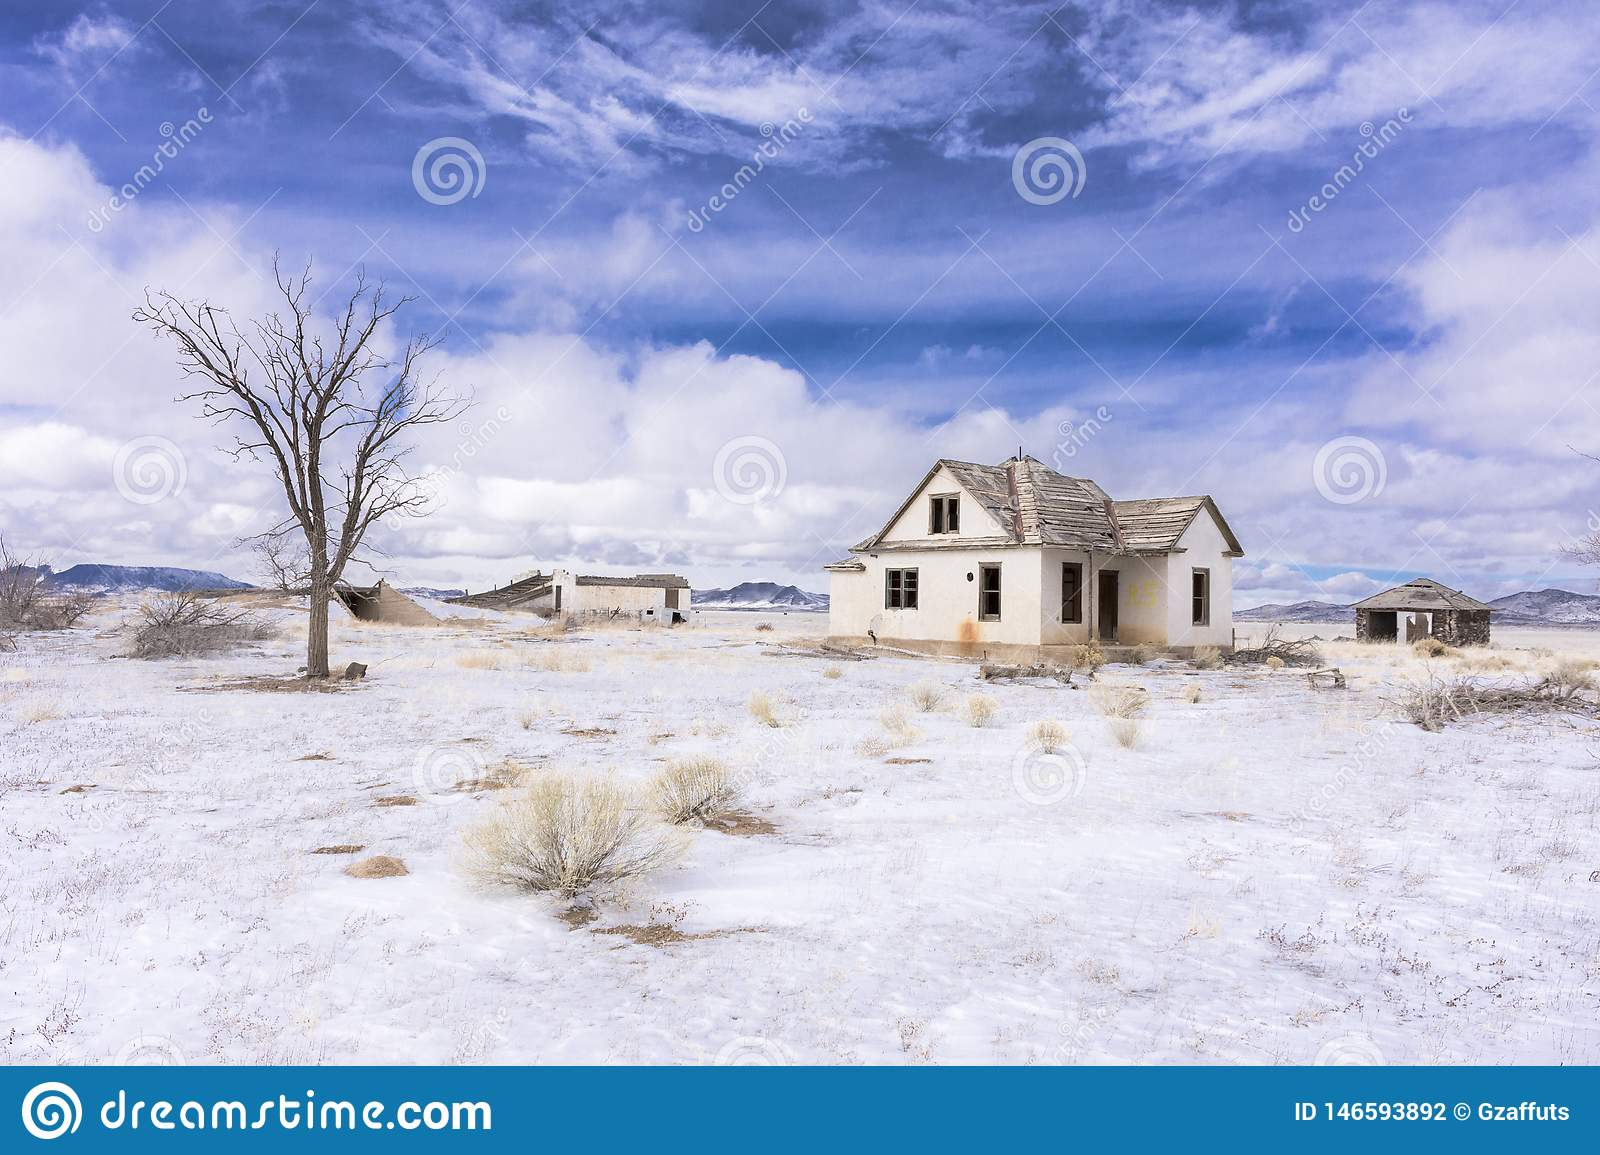 Abandoned colorado homestead in winter with snow